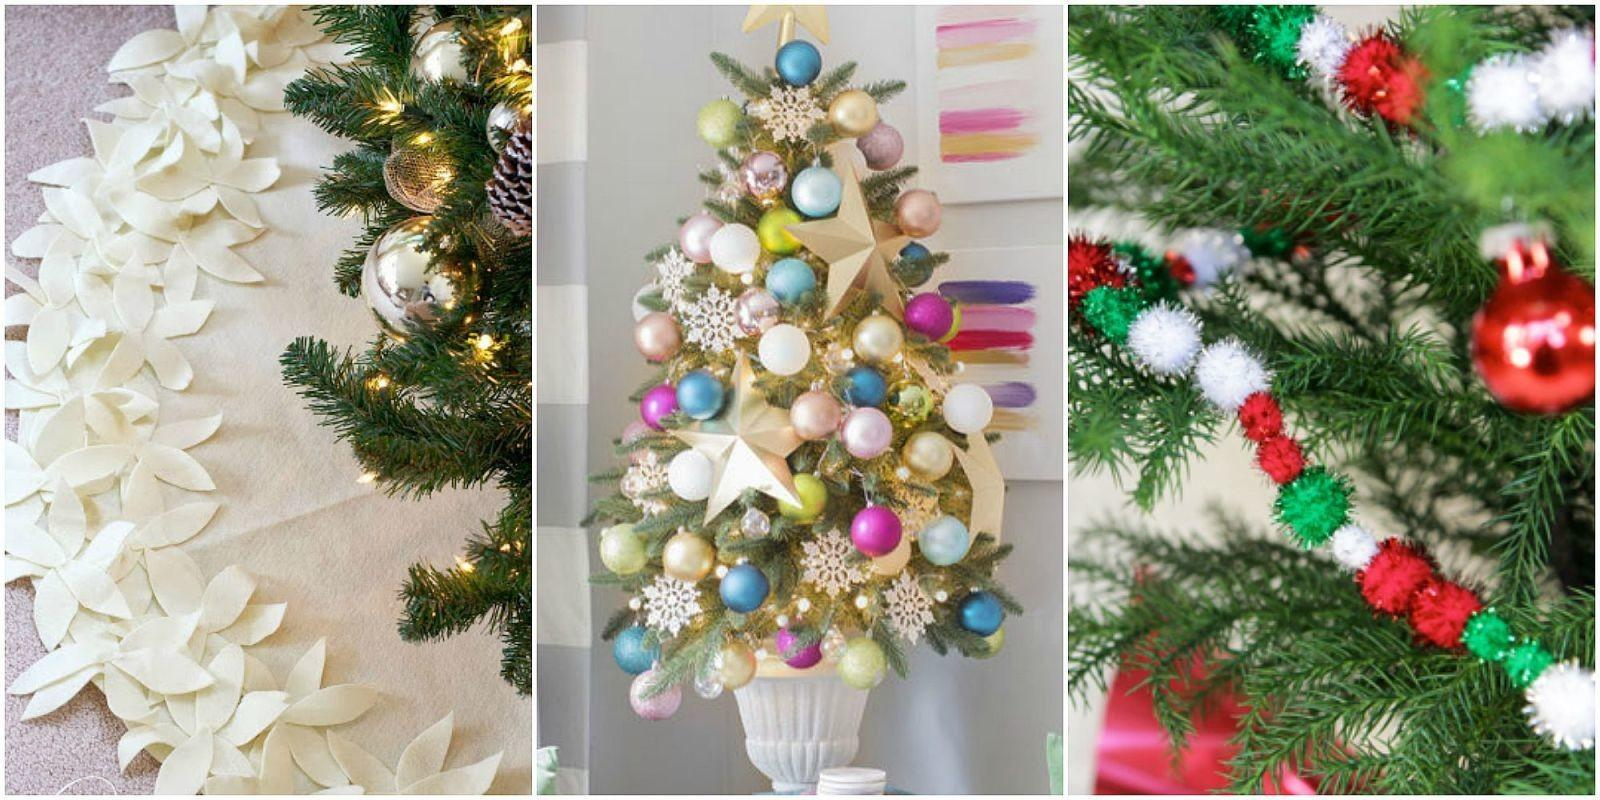 Unique Christmas Tree Decorations 2016 Ideas